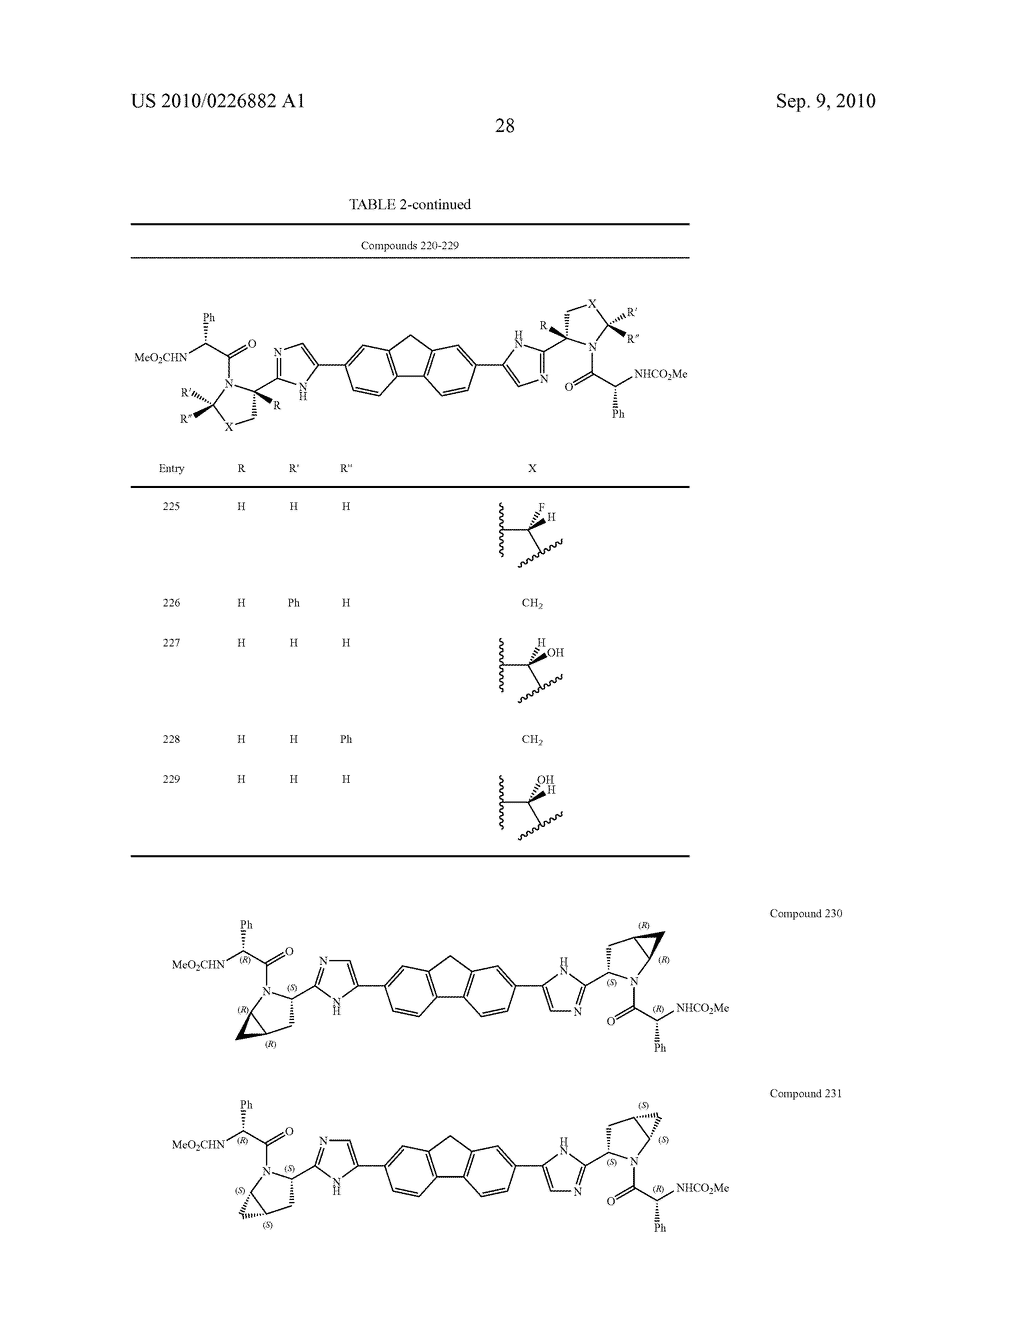 LINKED DIIMIDAZOLE ANTIVIRALS - diagram, schematic, and image 29